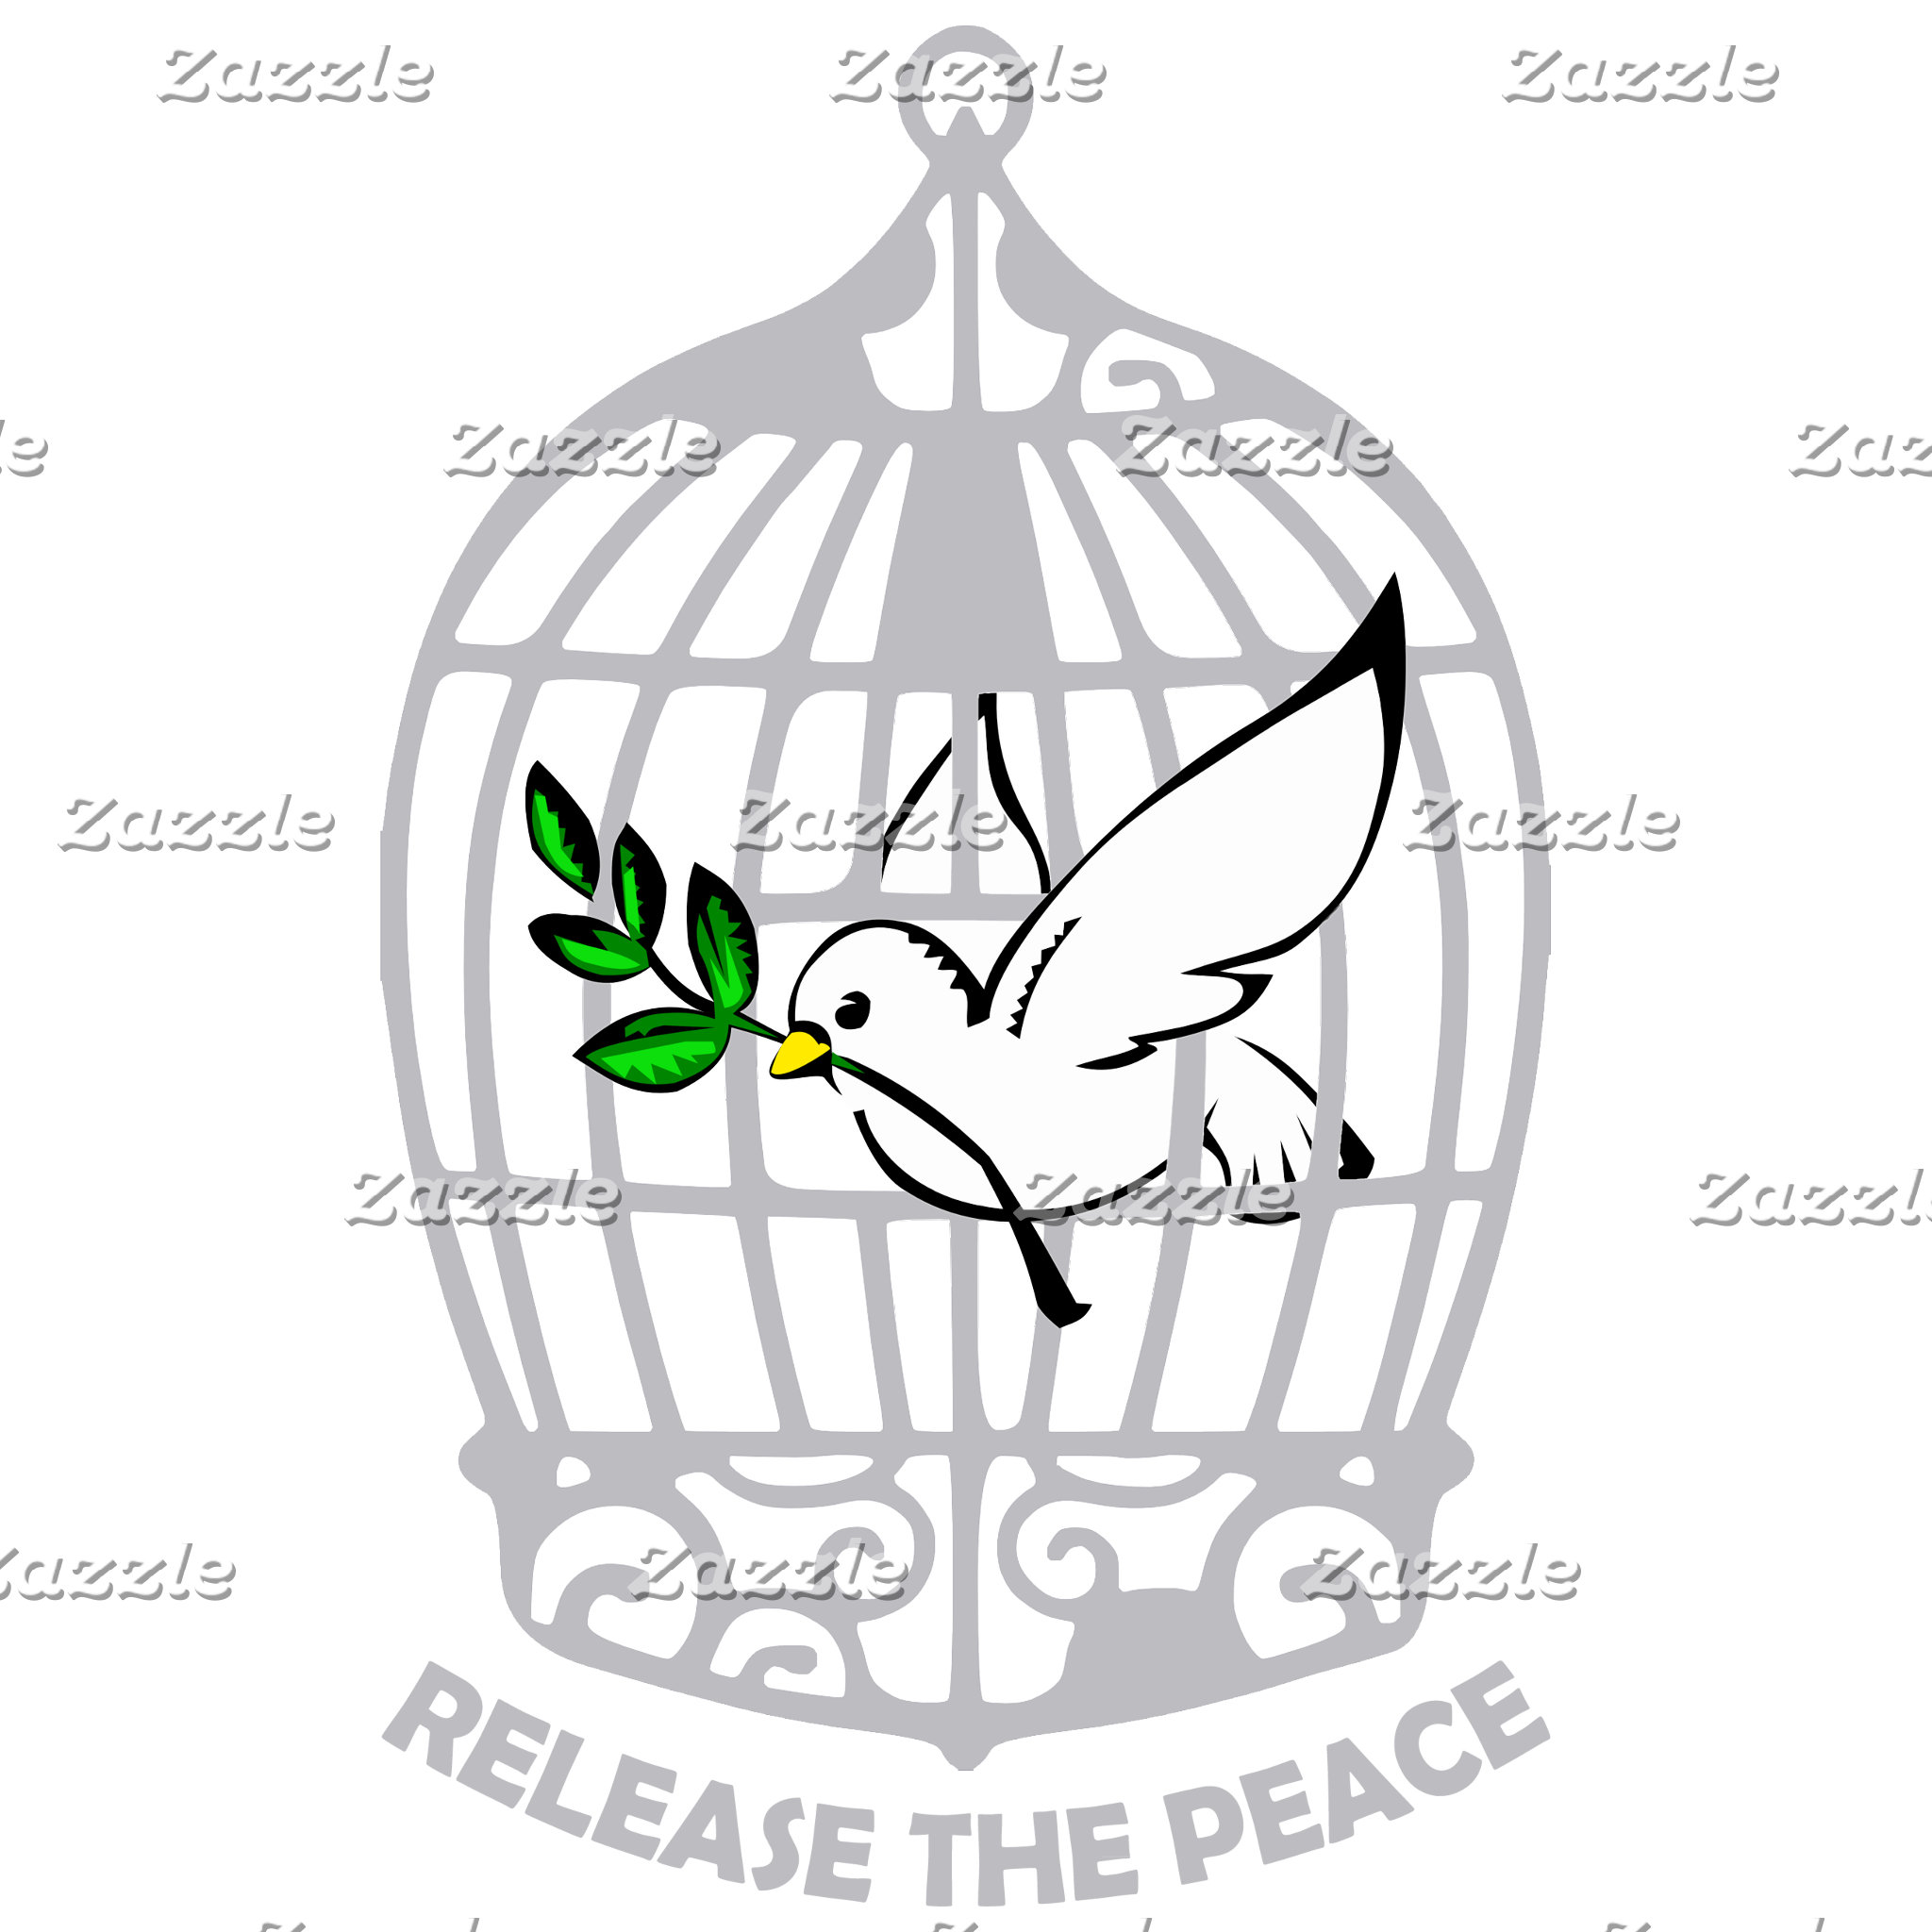 Release the Peace Dove